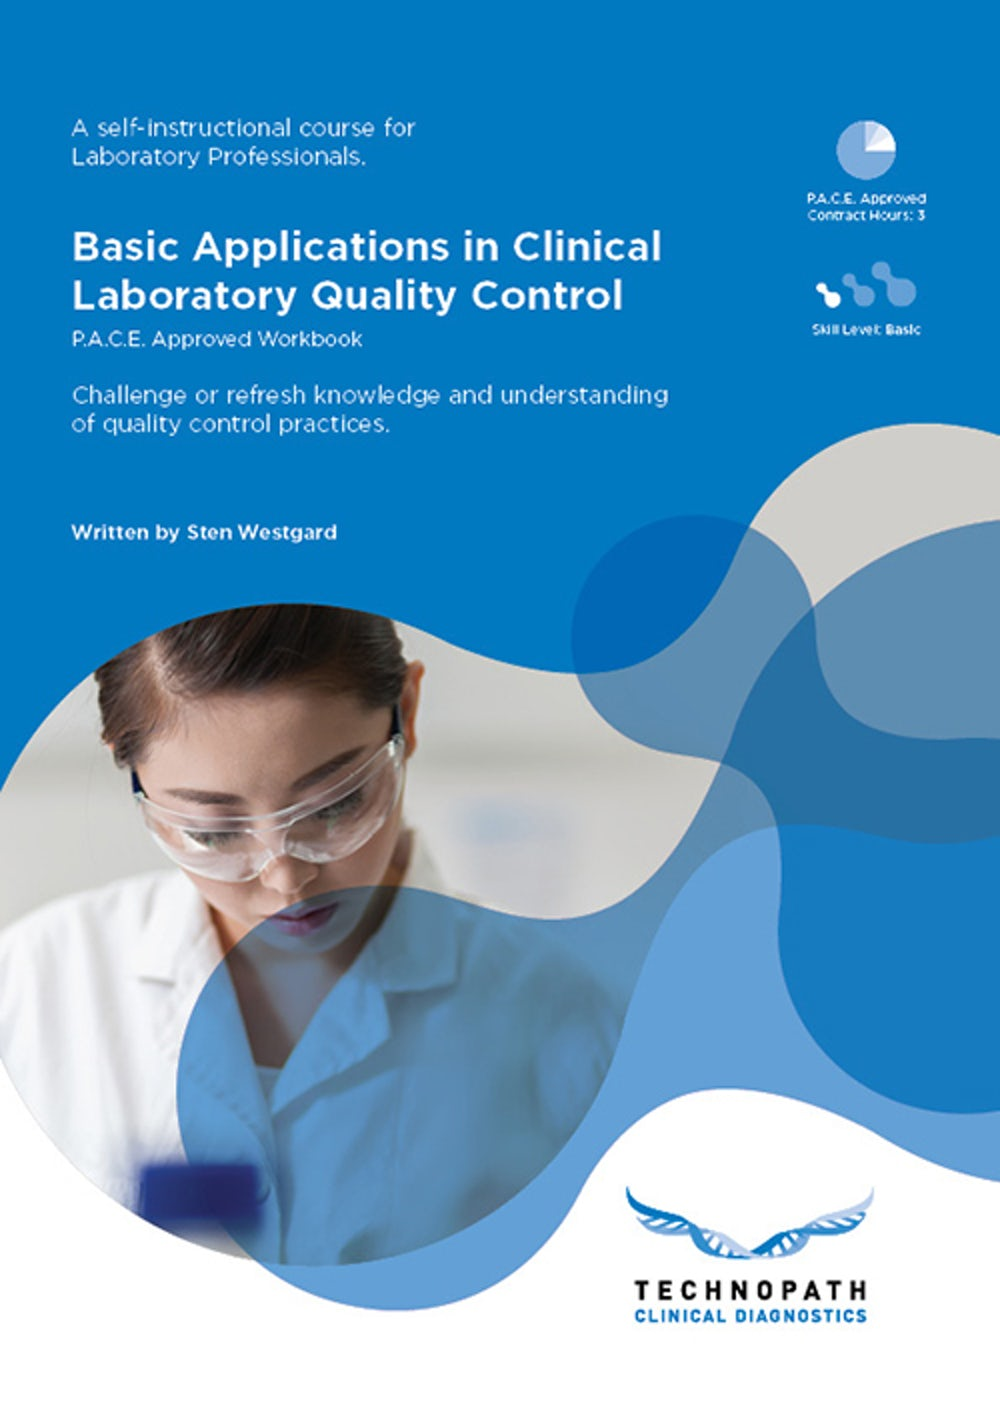 Cover of Technopath's self-instructional  QC Workbook